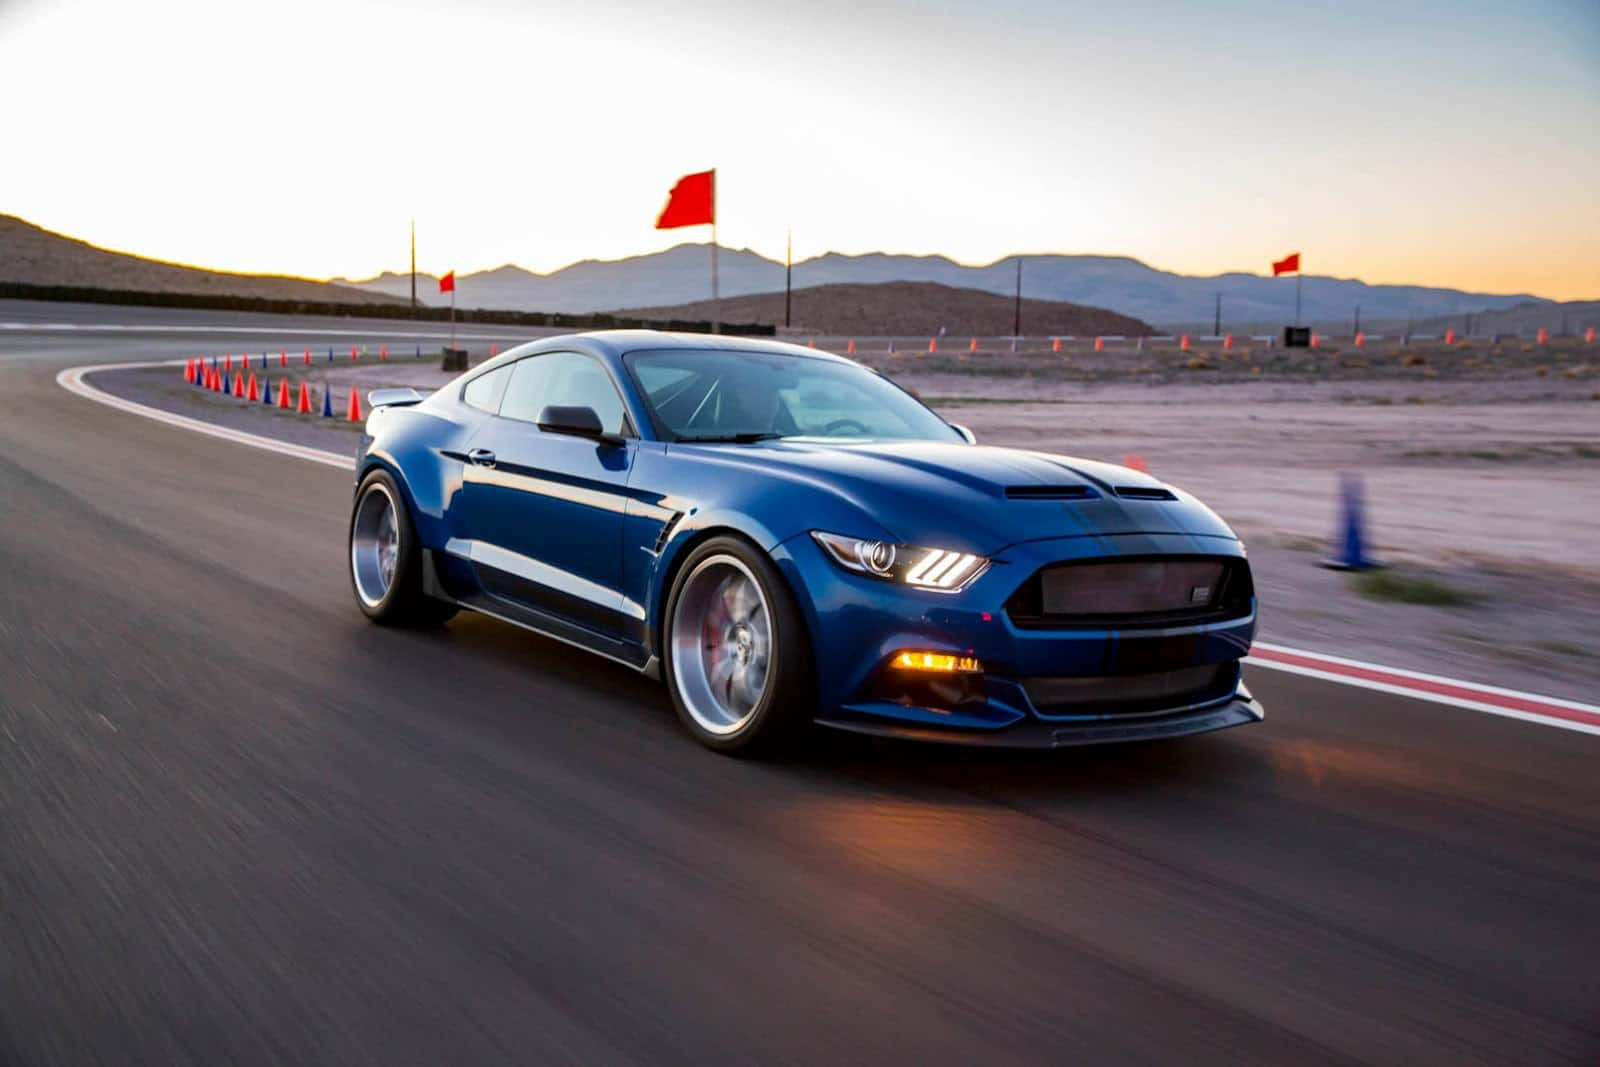 Ford Shelby Gt350r Interior >> Shelby's 2017 Super Snake Concept is Out on the Prowl